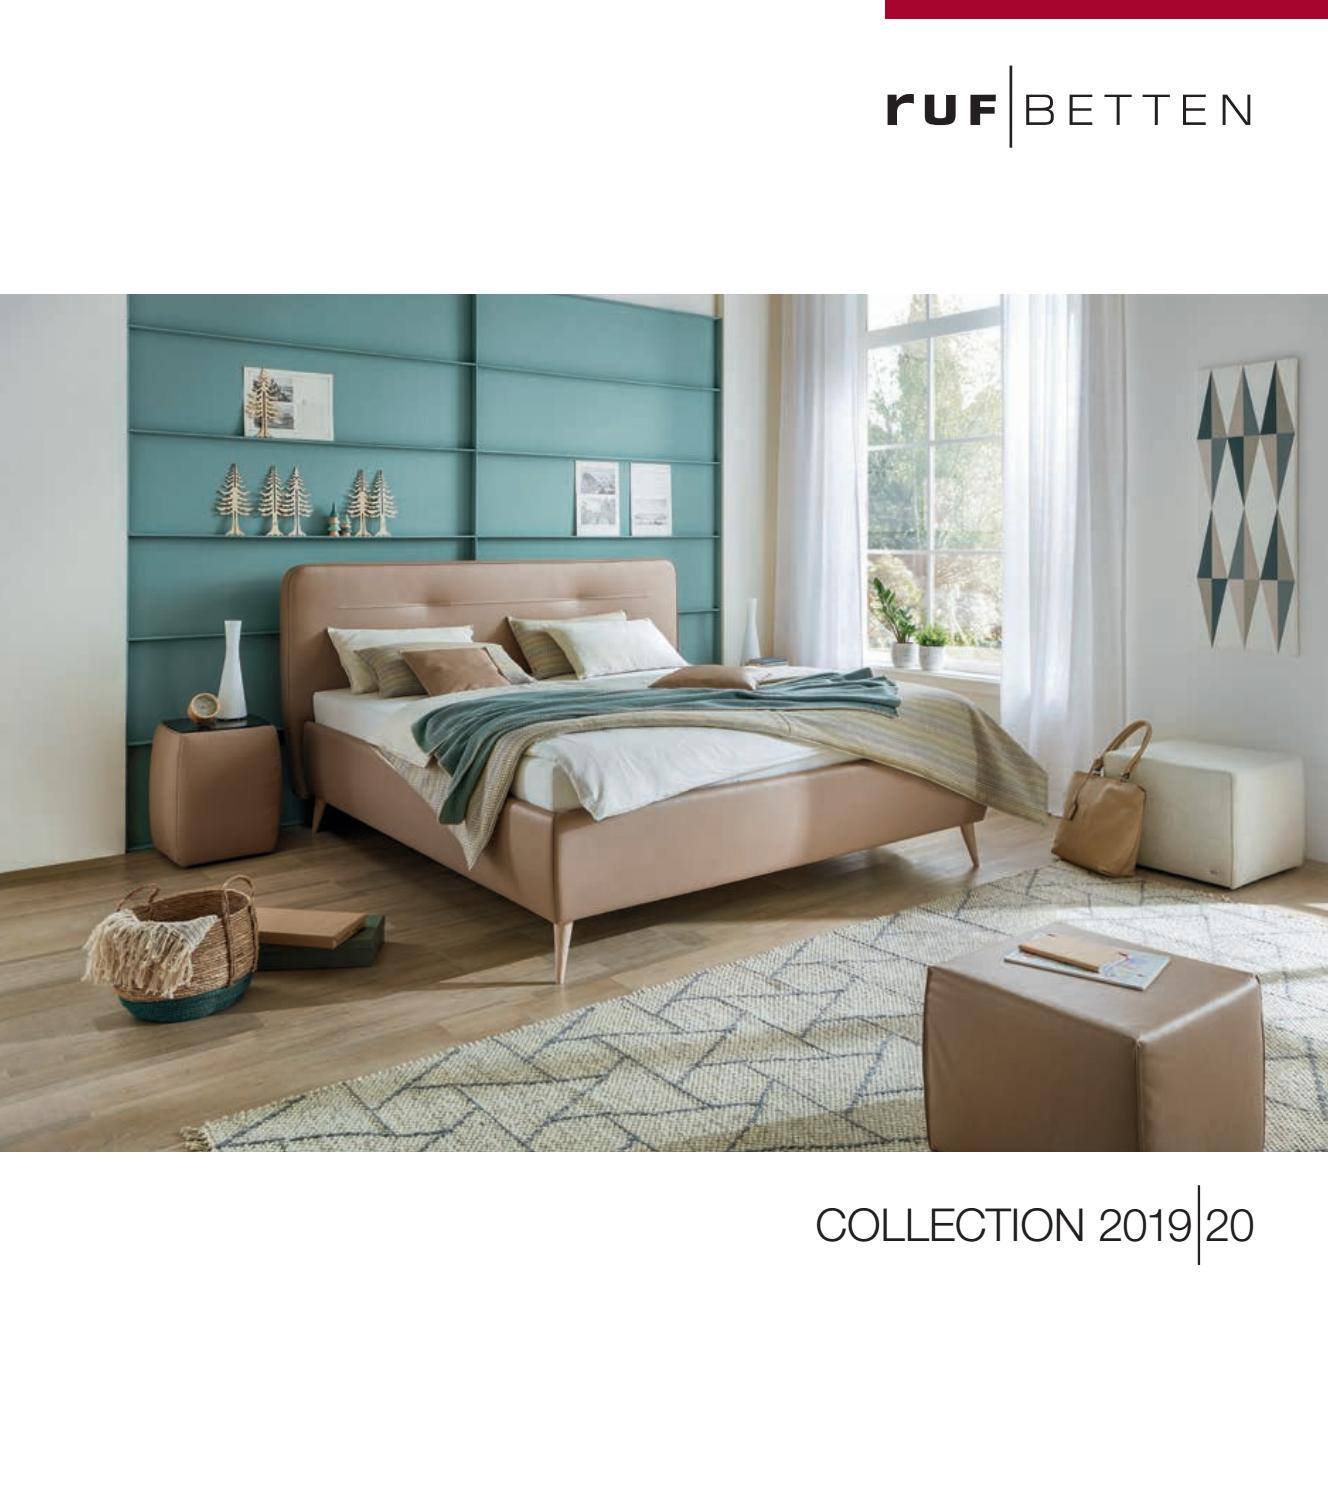 Ruf Betten Collection 2019 2020 By Perspektive Werbeagentur Issuu